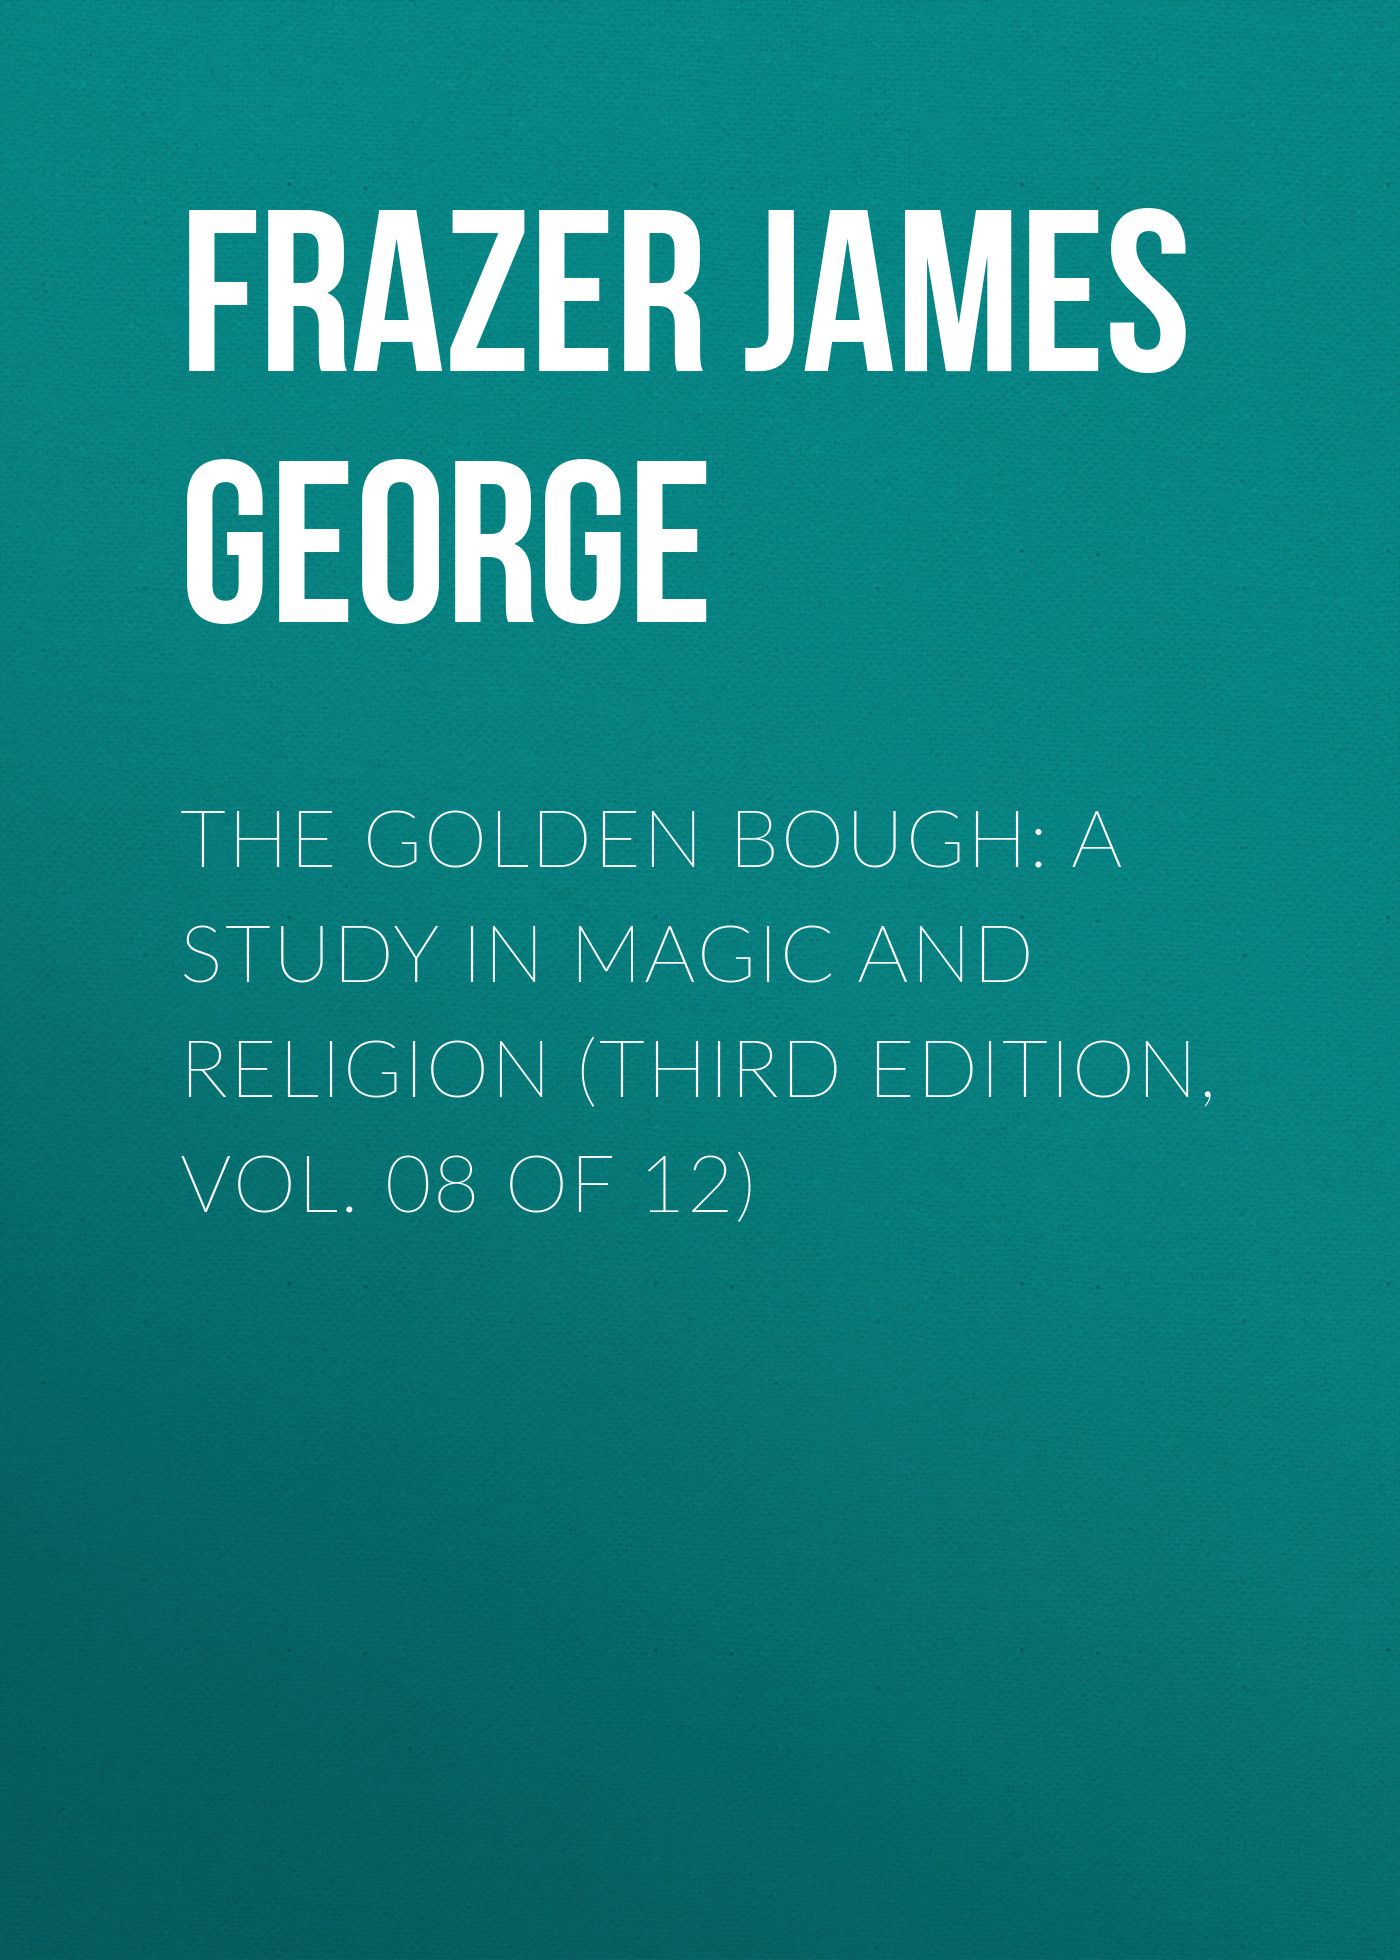 Frazer James George The Golden Bough: A Study in Magic and Religion (Third Edition, Vol. 08 of 12) frazer james george the belief in immortality and the worship of the dead volume 2 of 3